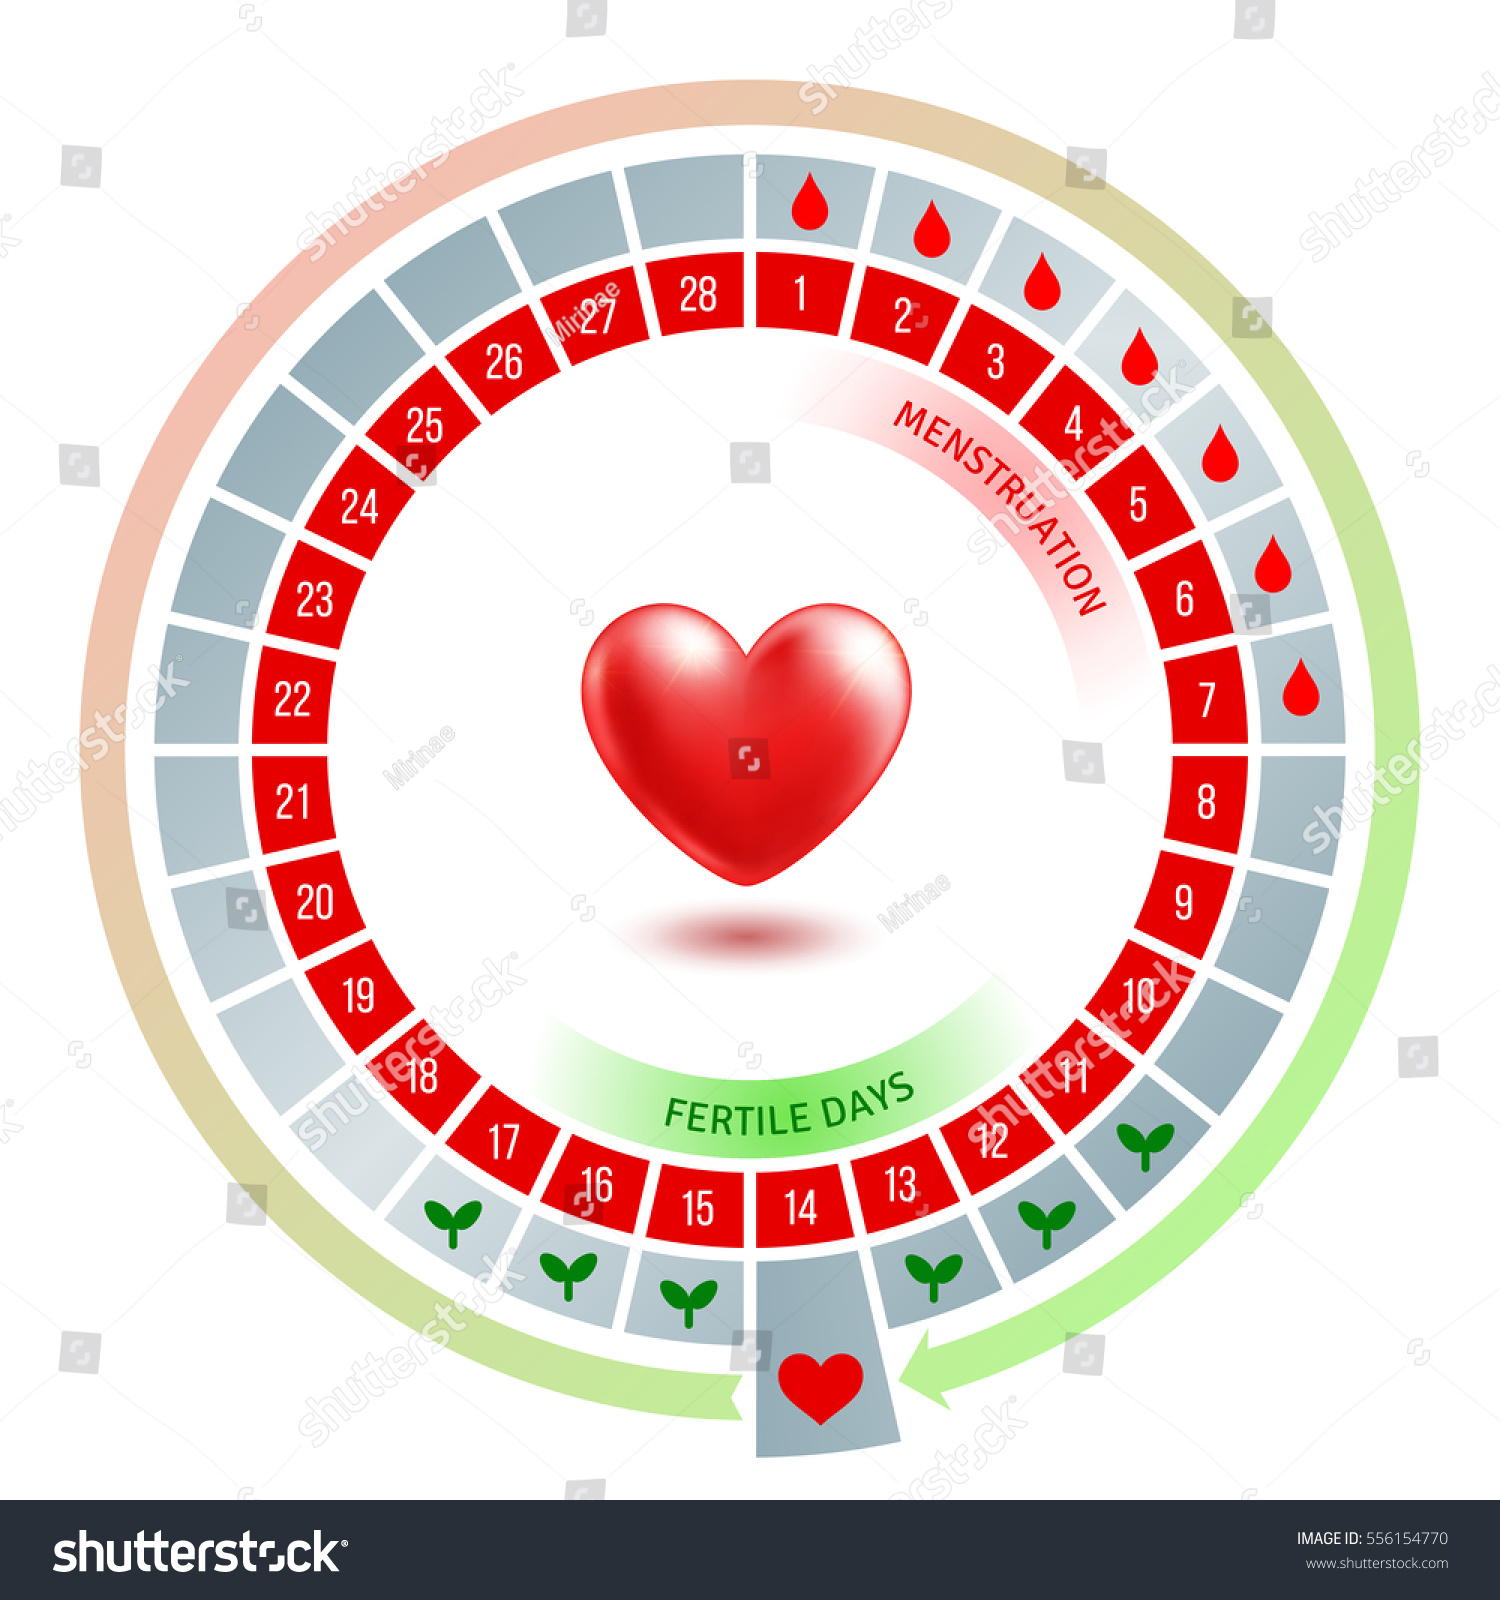 Circular flow chart shiny red heart stock vector 556154770 circular flow chart with shiny red heart average number of days in menstrual cycle and nvjuhfo Image collections